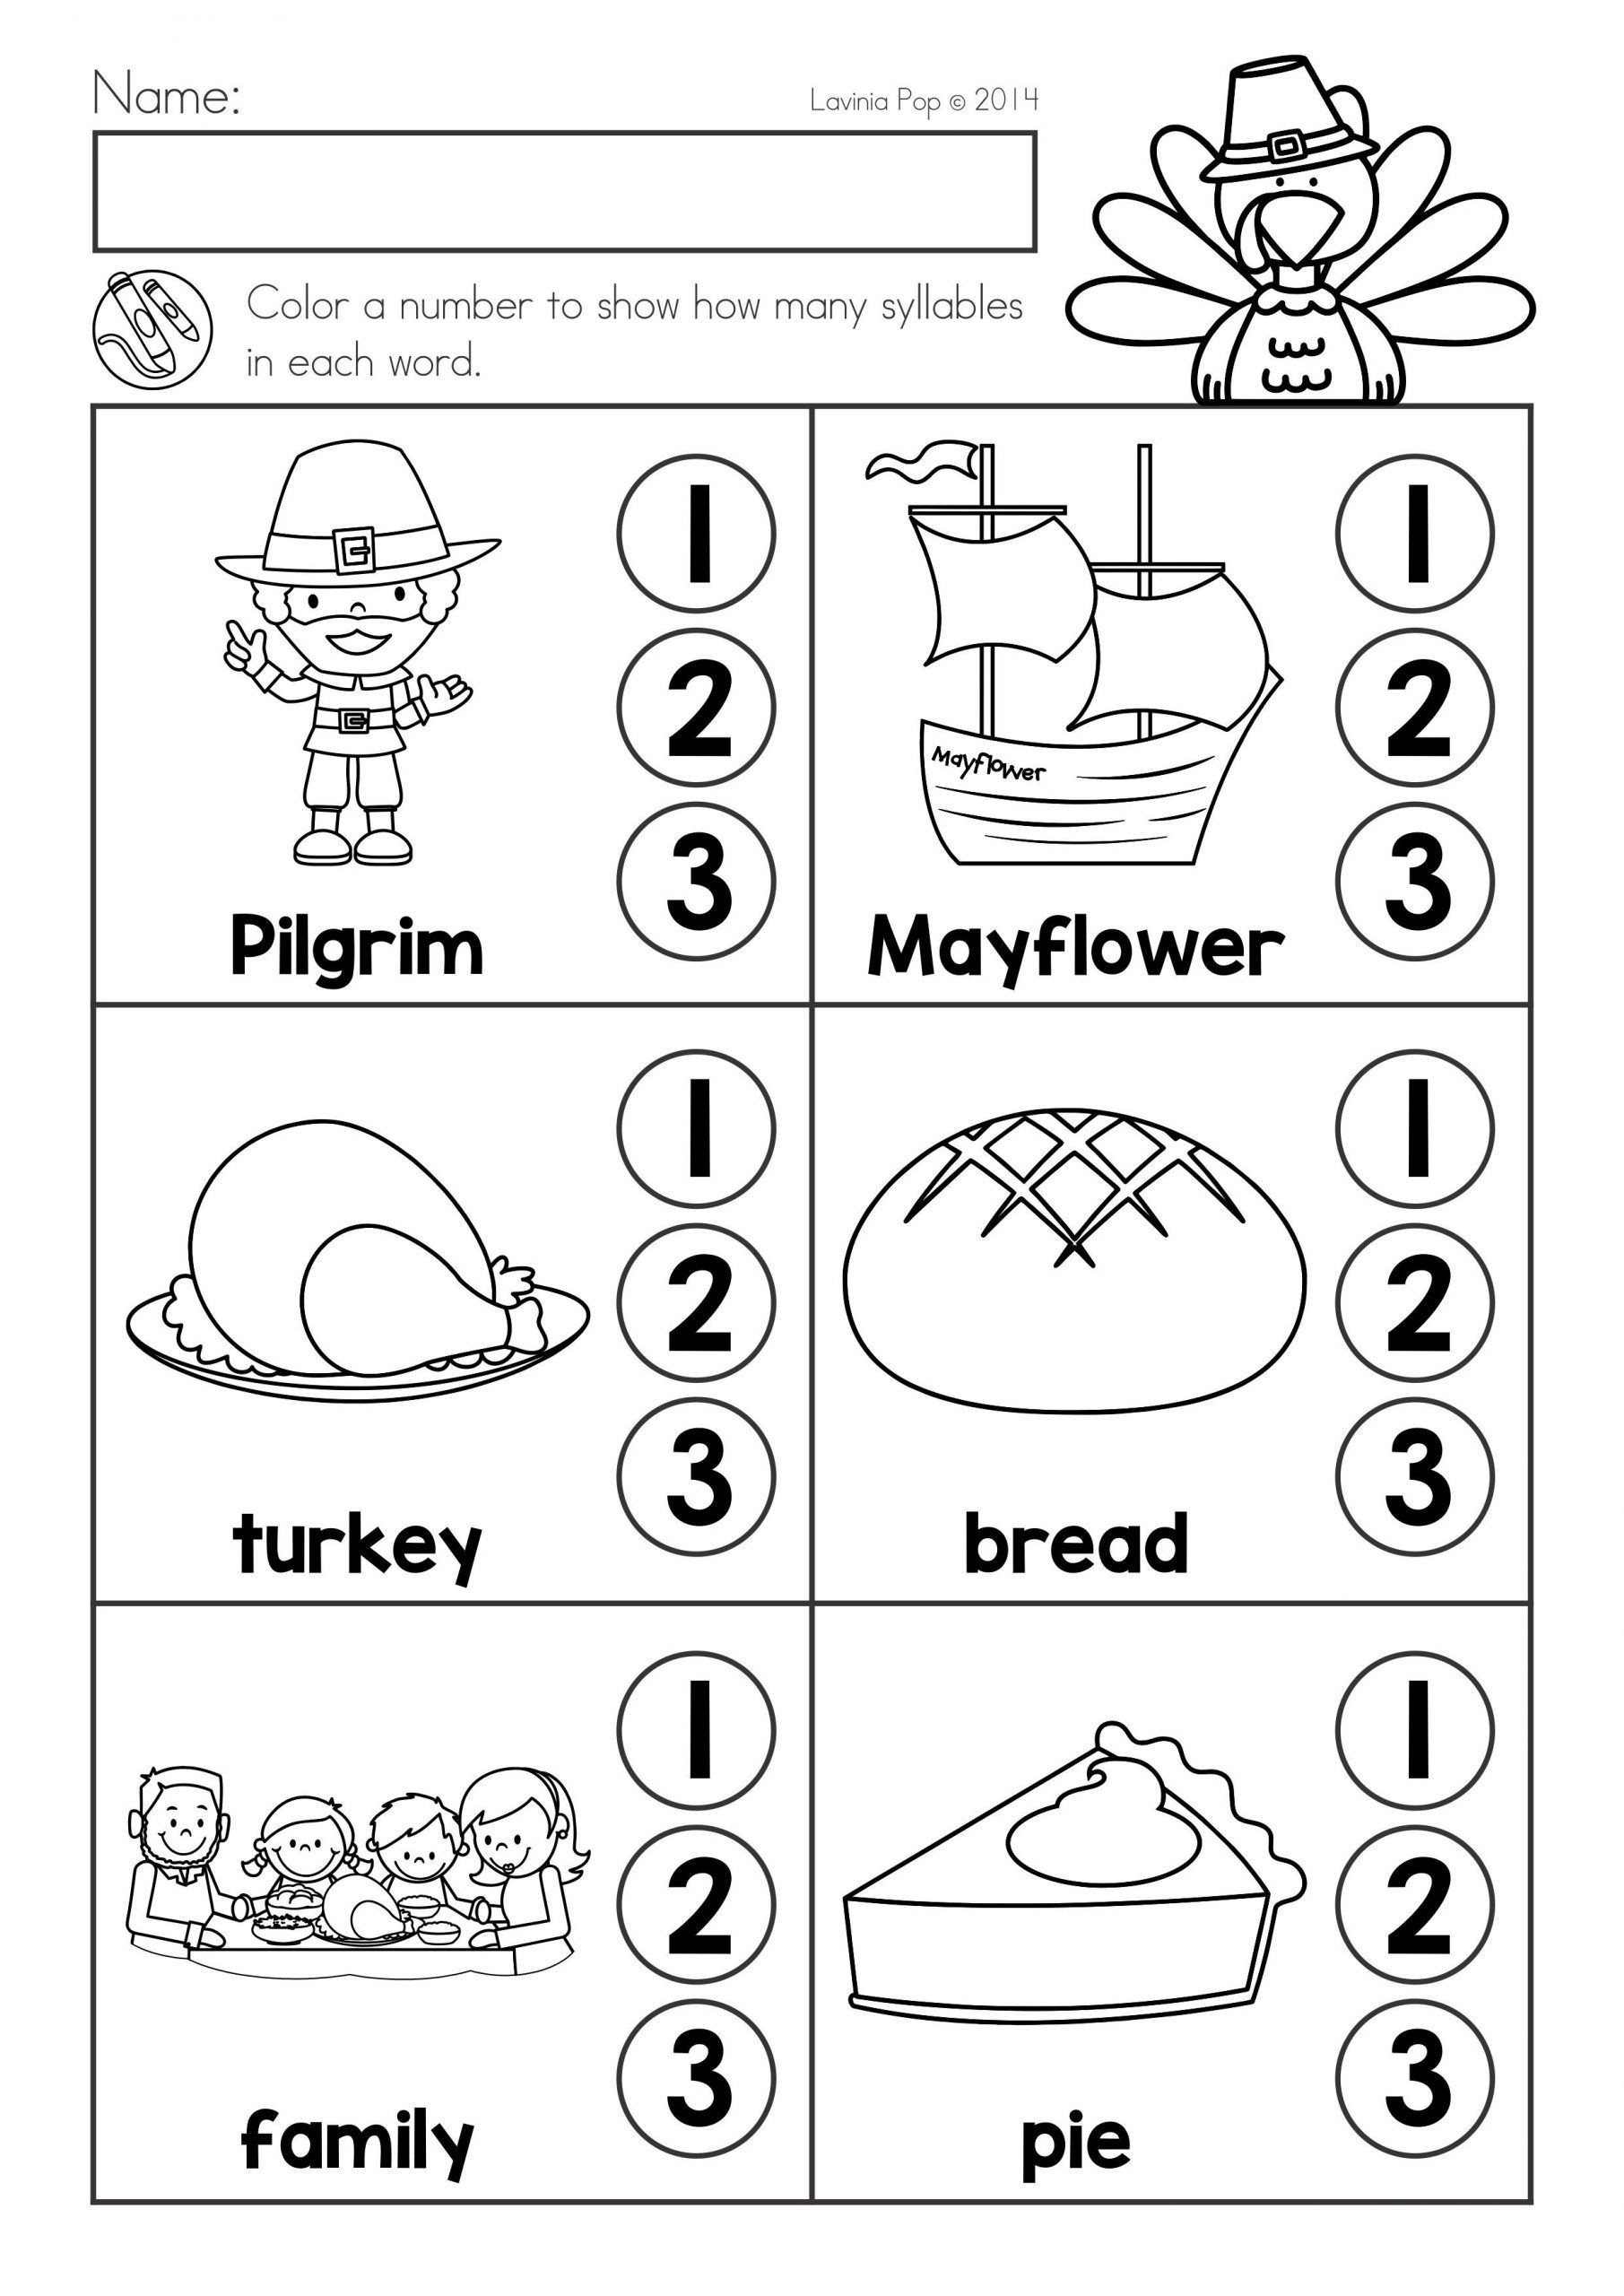 Free Syllables Worksheets For Kindergarten Syllable Worksheet Thanksgiving Math Worksheets Literacy Worksheets